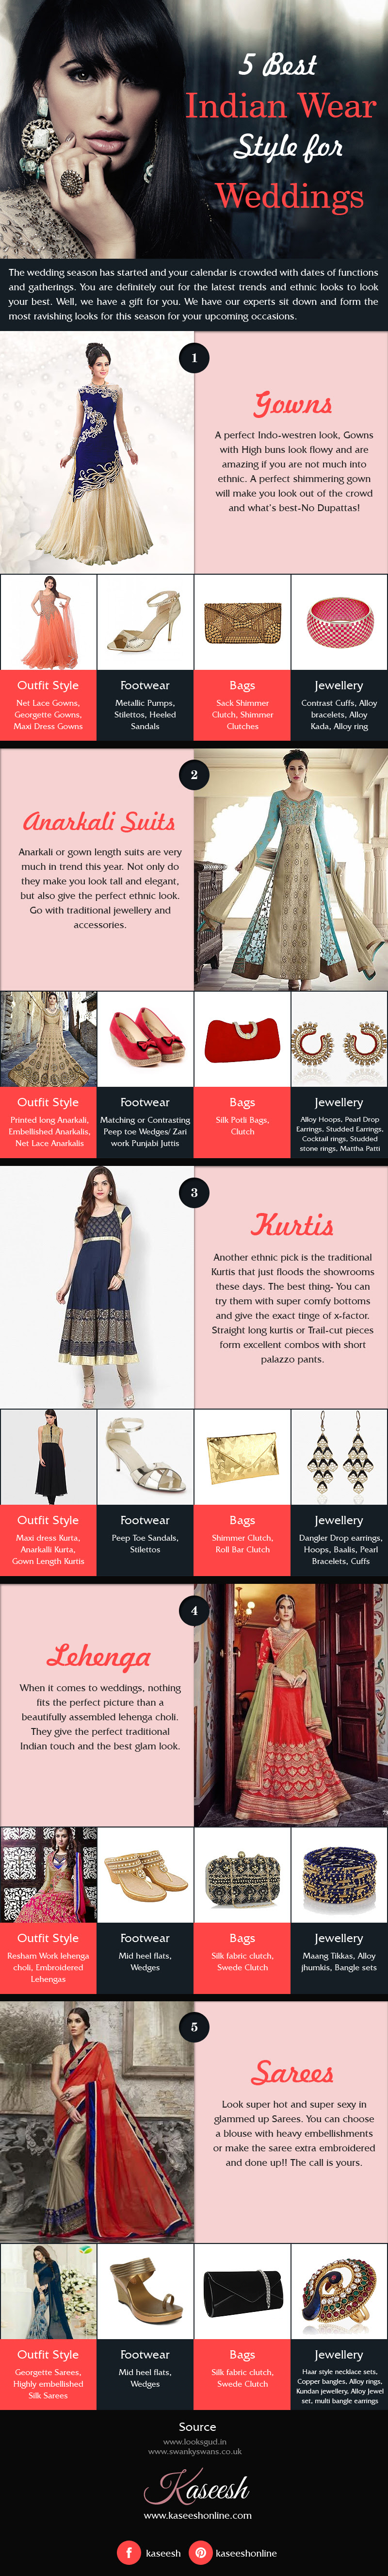 5 Best Indian Wear Style for Weddings - Kaseesh